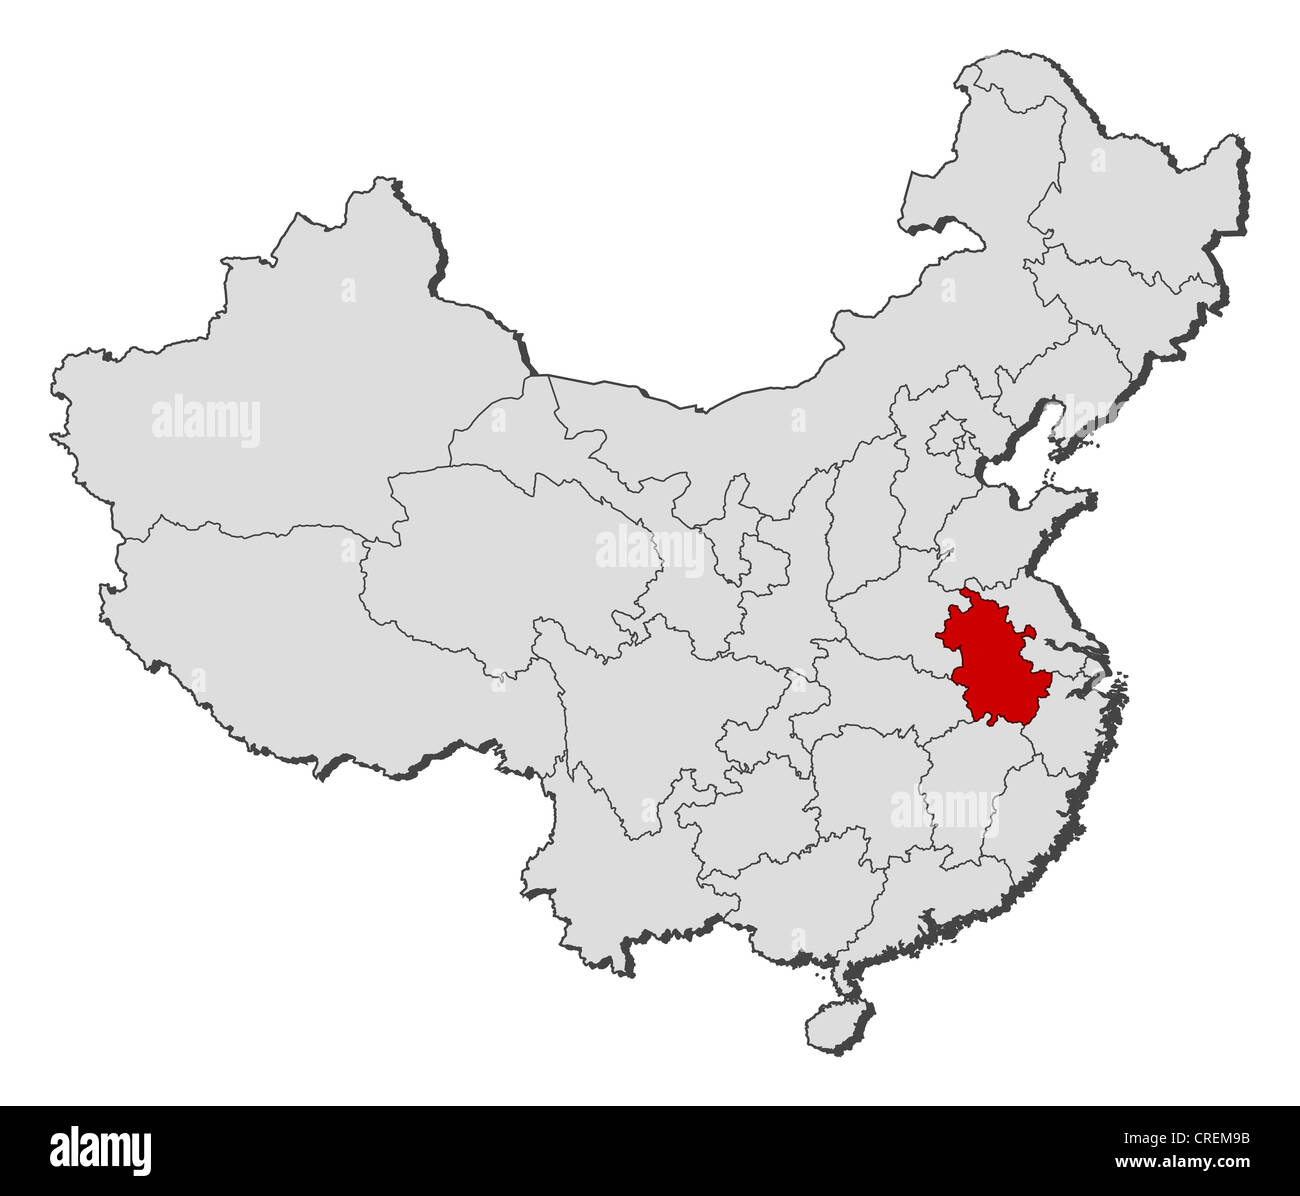 Where is anhui